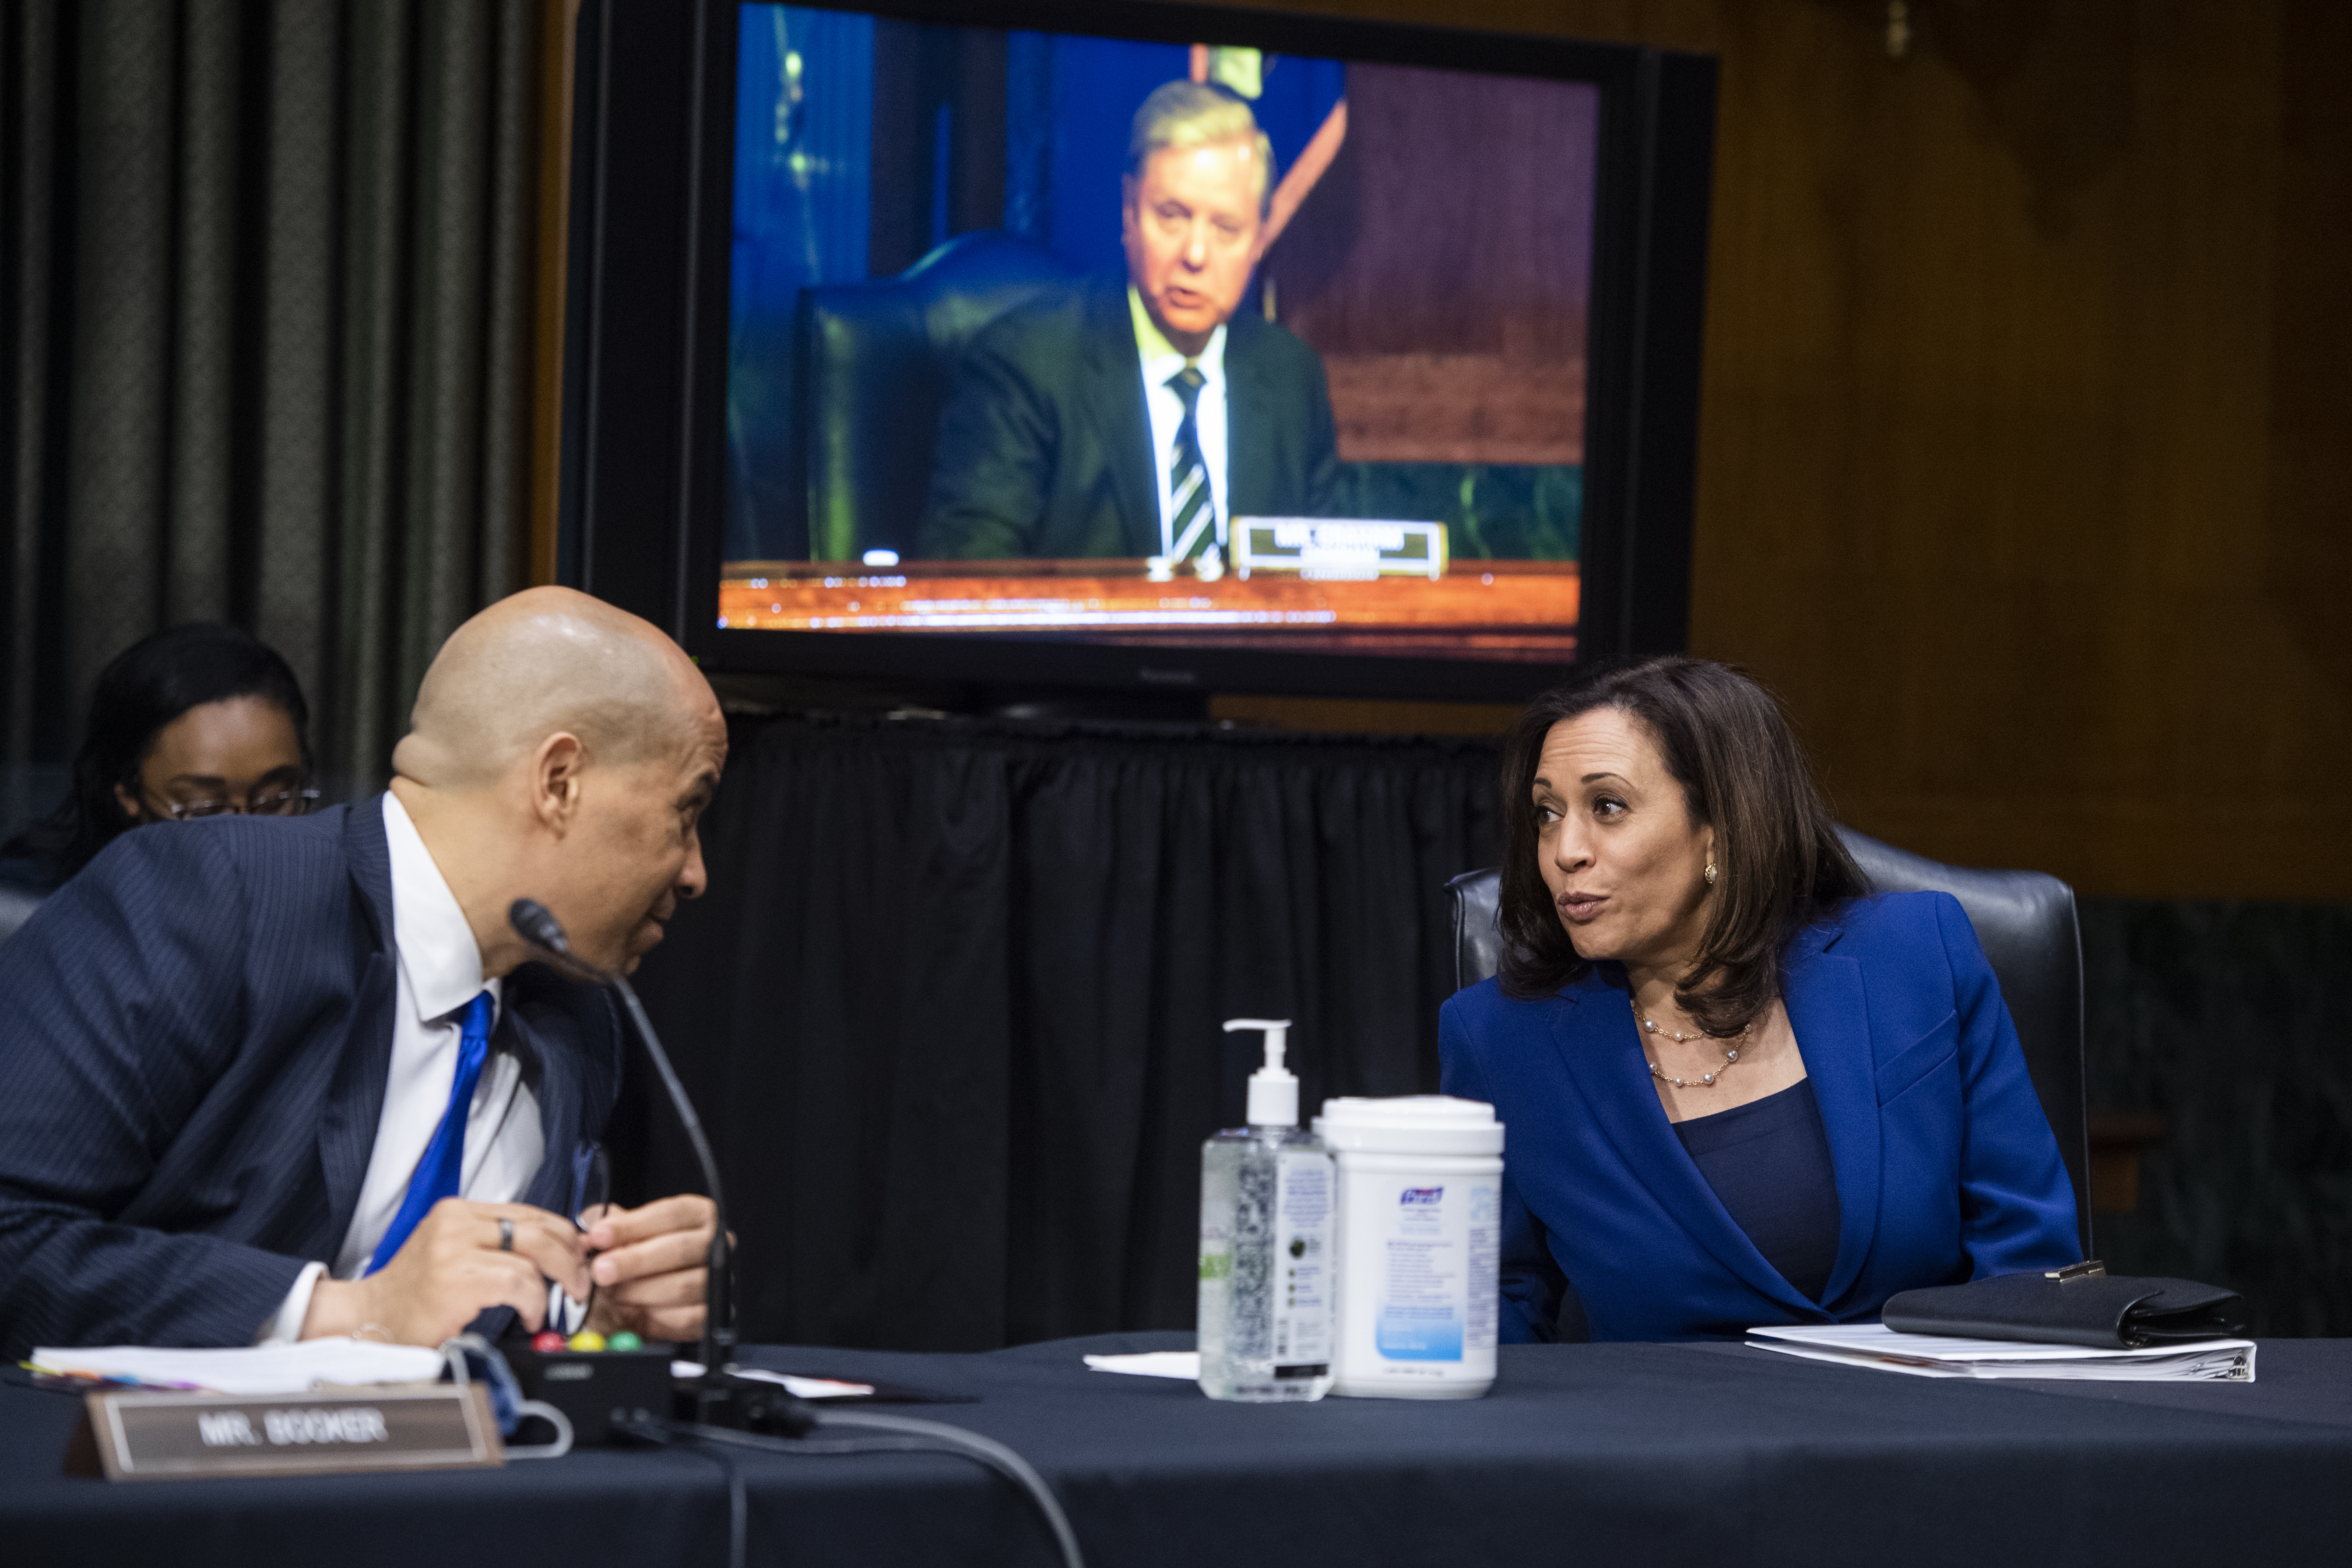 WASHINGTON, DC - JUNE 16: Sen. Cory Booker (D-NJ) talks to Sen. Kamala Harris (D-CA) during a Judiciary Committee hearing in the Dirksen Senate Office Building on June 16, 2020 in Washington, D.C. The Republican-led committee was holding its first hearing on policing since the death of George Floyd while in Minneapolis police custody on May 25. (Tom Williams-Pool/Getty Images)